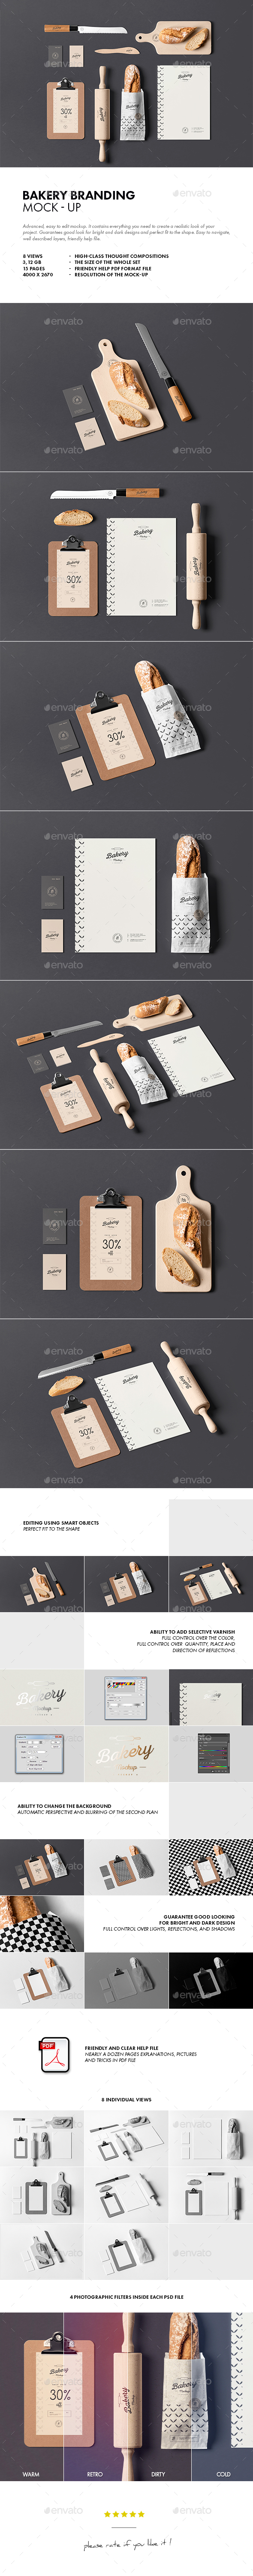 Bakery Branding Mock-up - Stationery Print